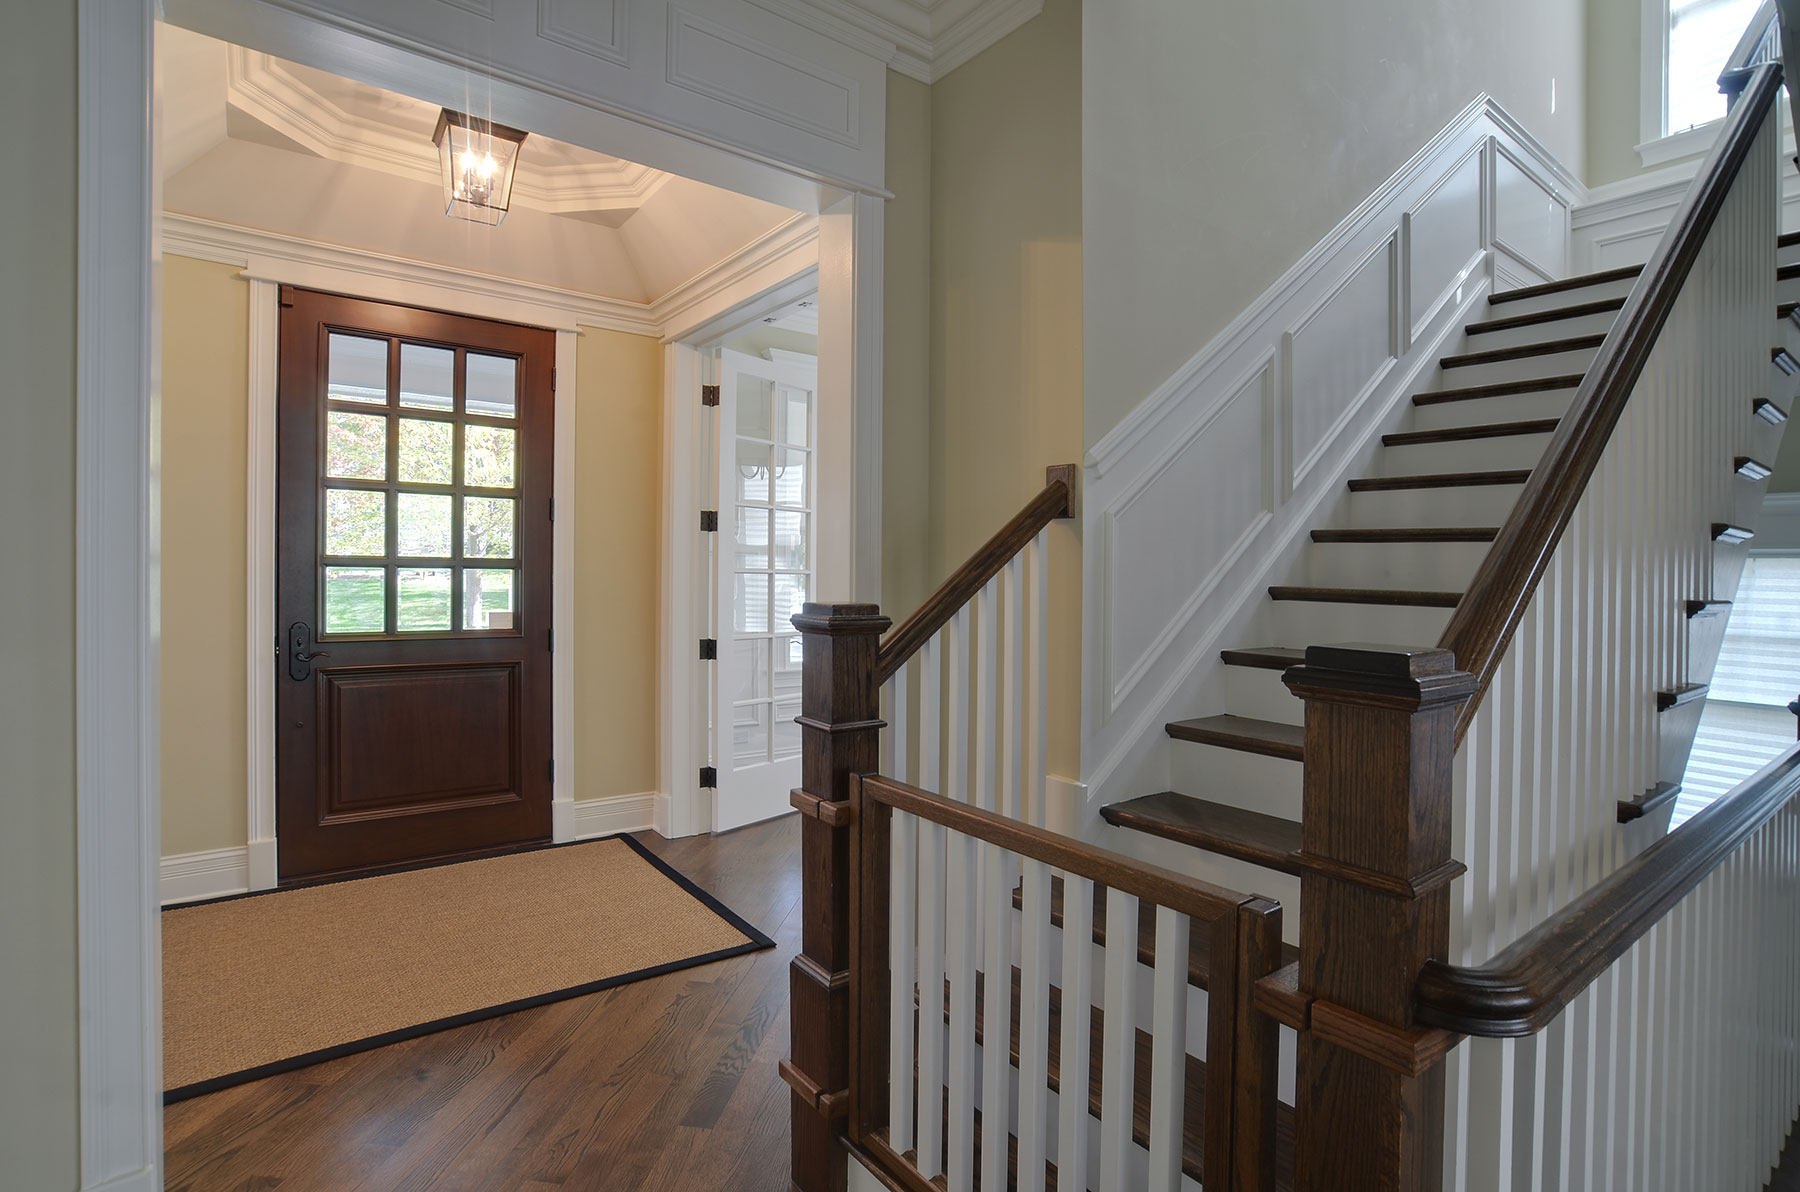 Solid Wood Front Entry Doors in-Stock | Classic Collection French Solid Wood Front Entry Door - Clear Beveled Glass DB-012W - Glenview Doors - Custom Doors in Chicago